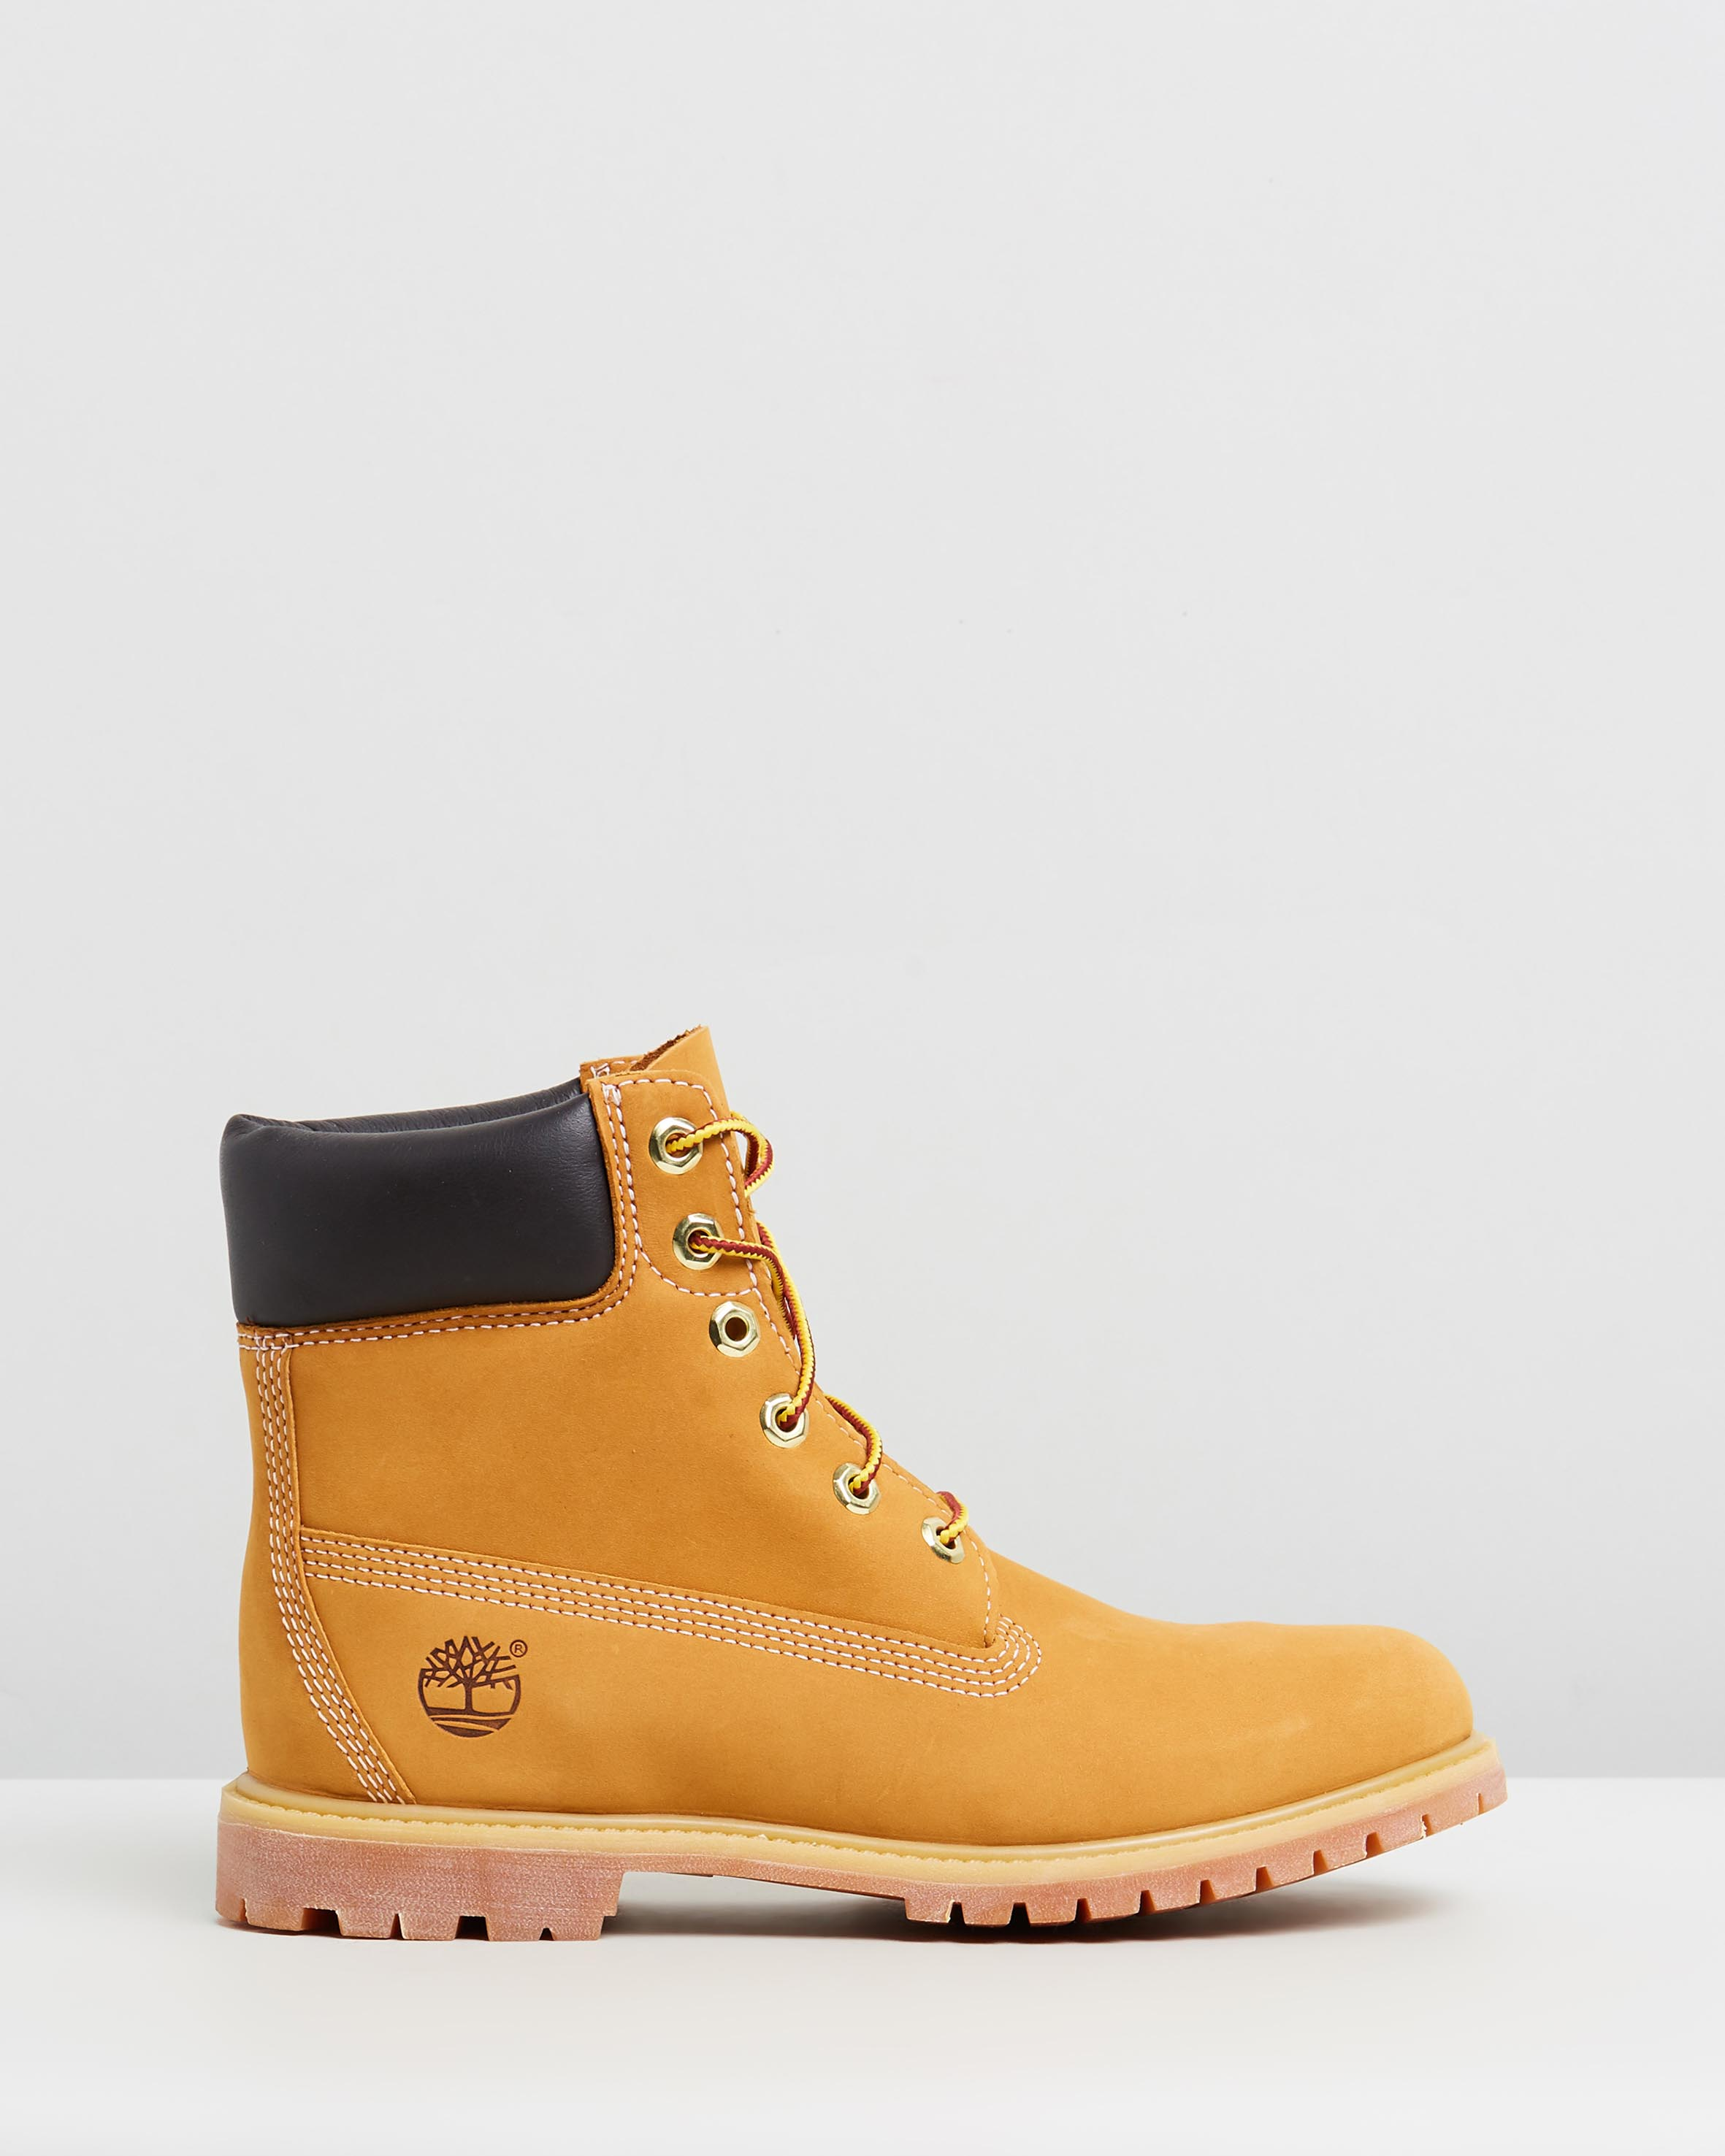 Buy timberland boots. Online shoes for women